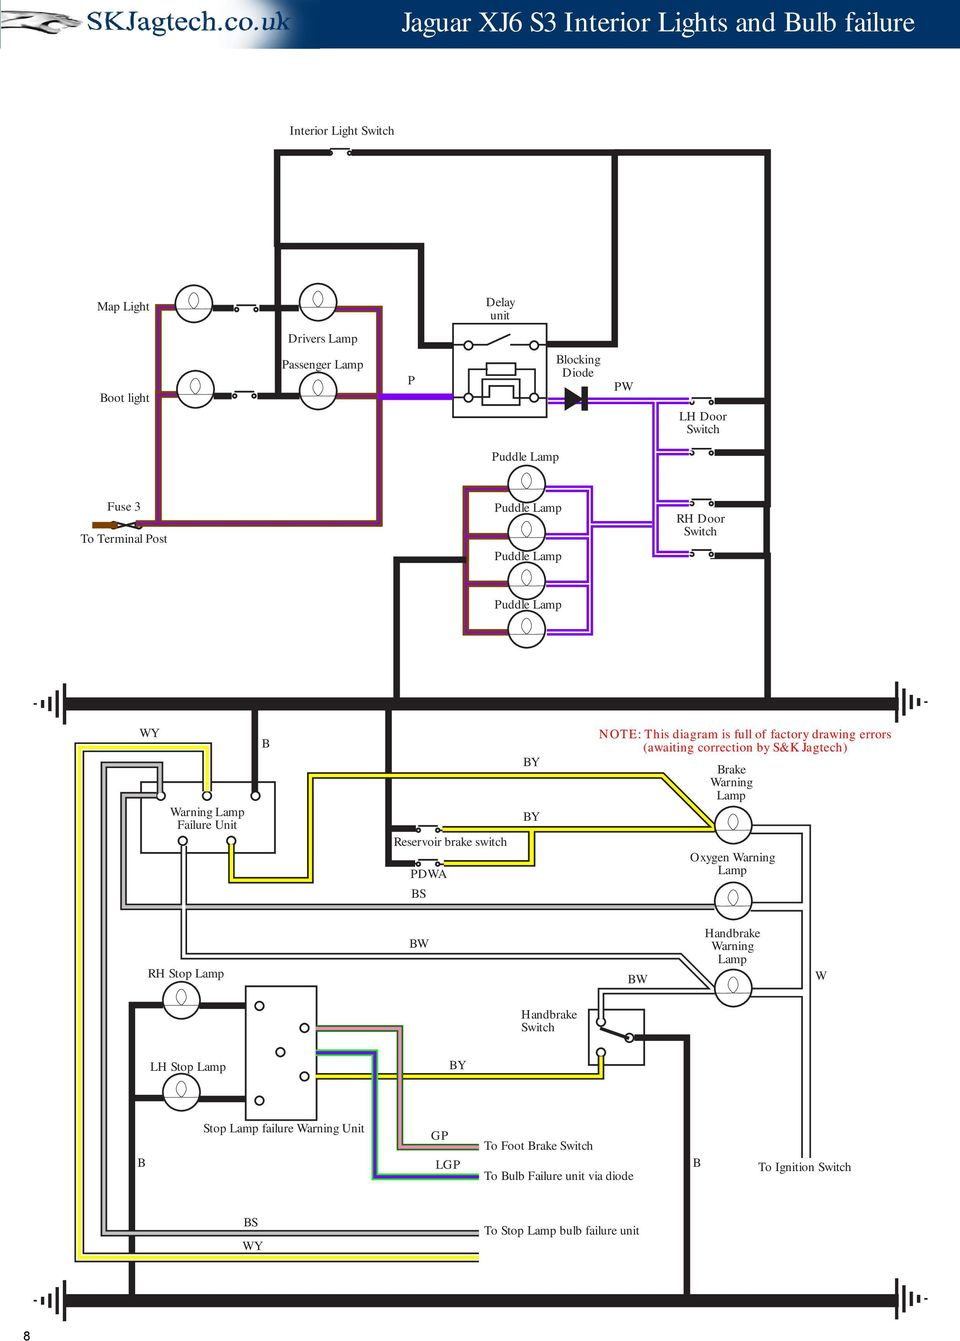 Jaguar Xj6 Series 3 Schematic Drawings Pdf 1992 Subaru Svx Fuse Box Diagram This Is Full Of Factory Drawing Errors Awaiting Correction By Sk Jagtech Rake